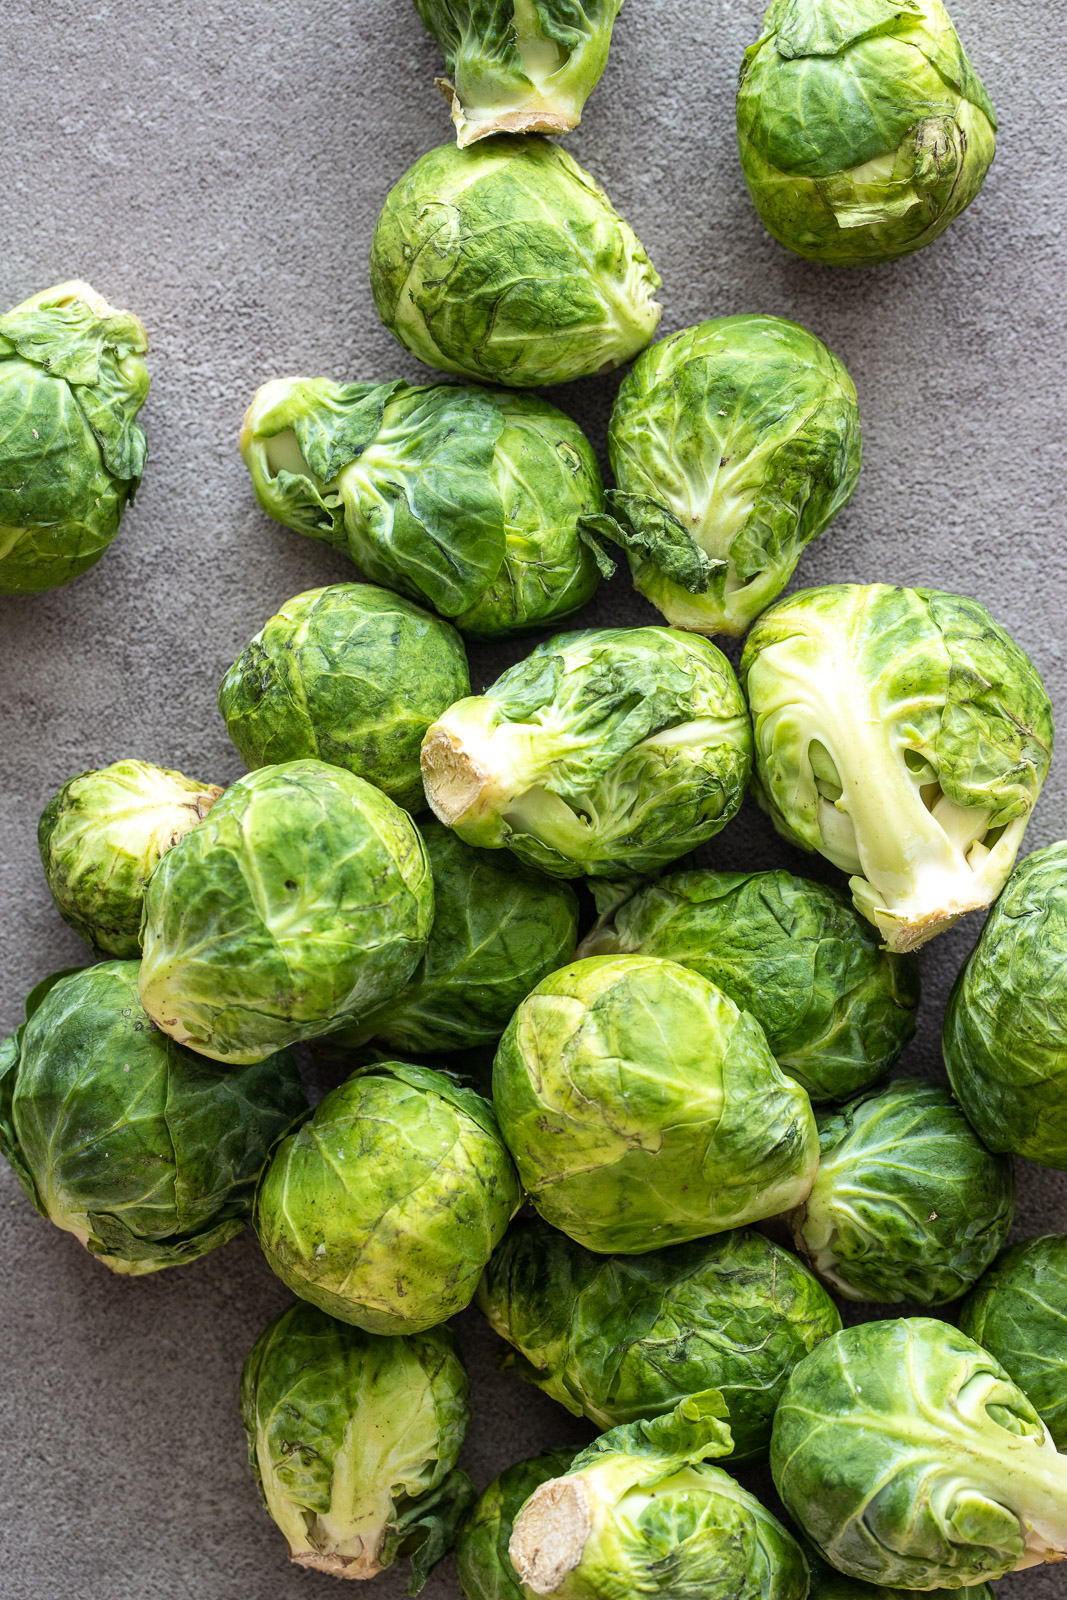 raw brussel sprouts on a surface.